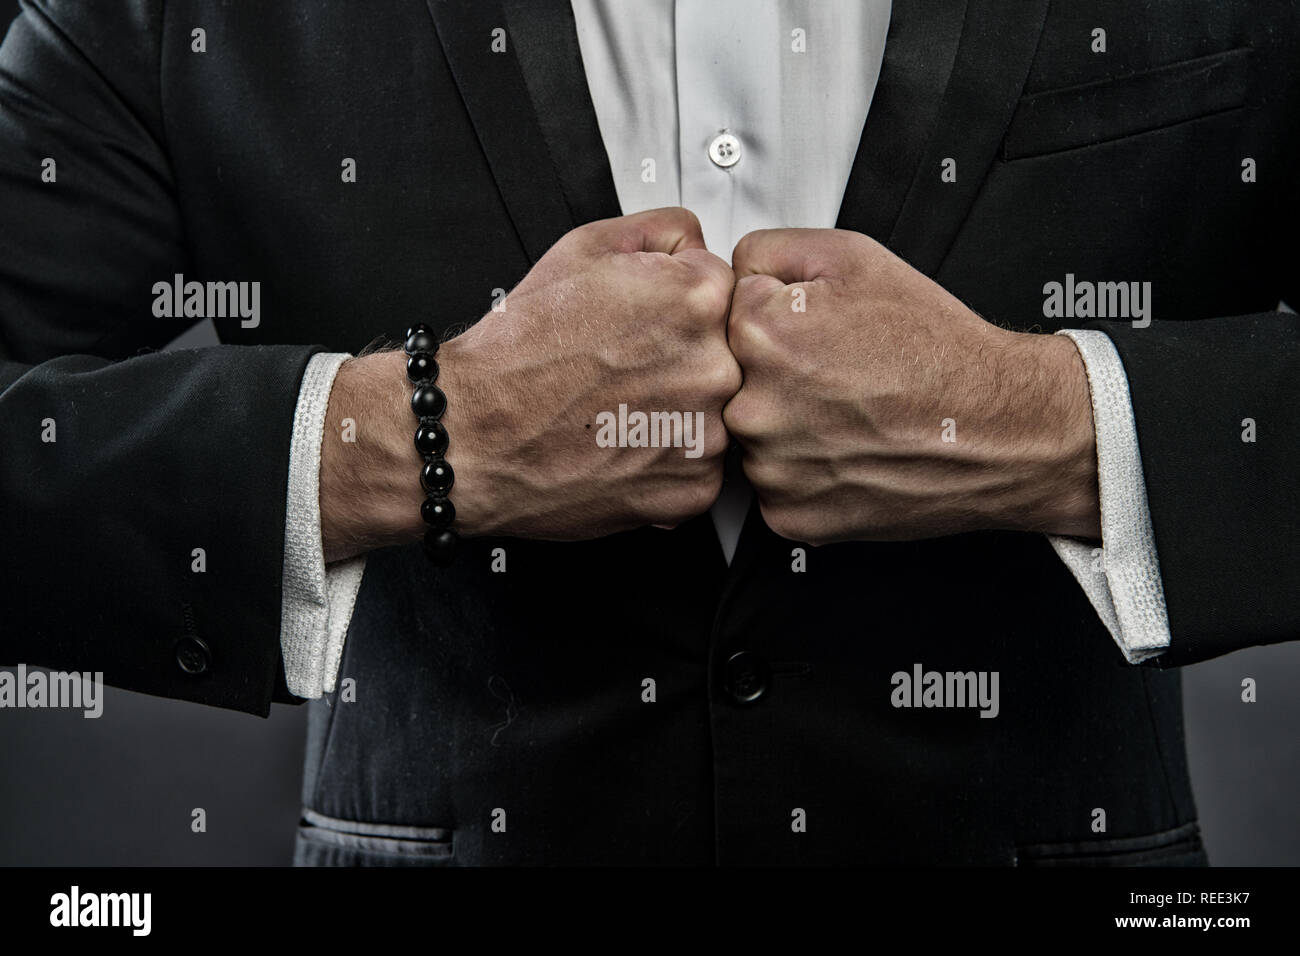 Male fists with swollen veins and bracelet on formal suit background. Confrontation concept. Hand of business person confronts against each other. Symbol of strength of will. - Stock Image